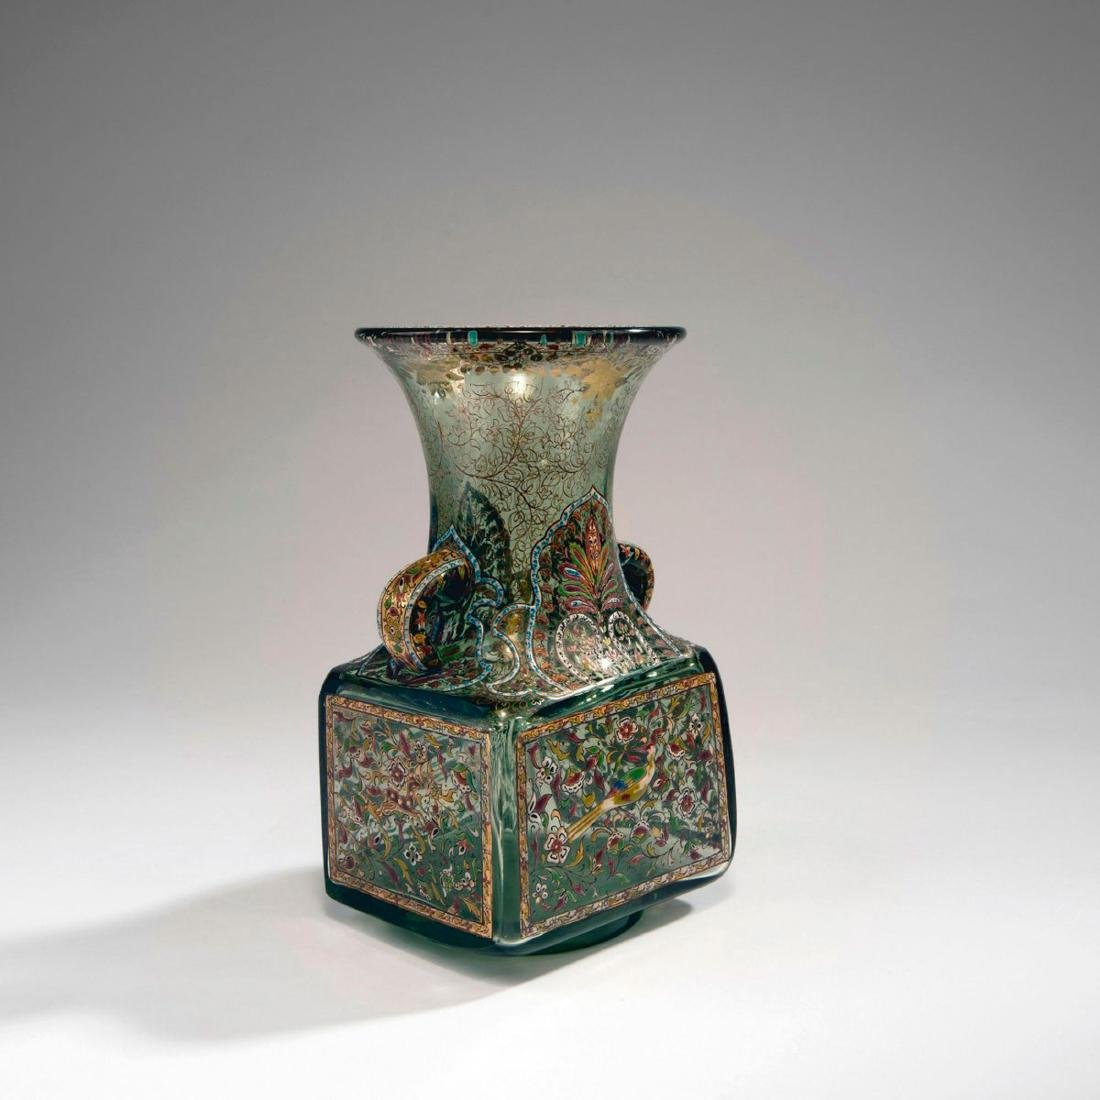 'Inspiration Persanne' vase with handles, c. 1880